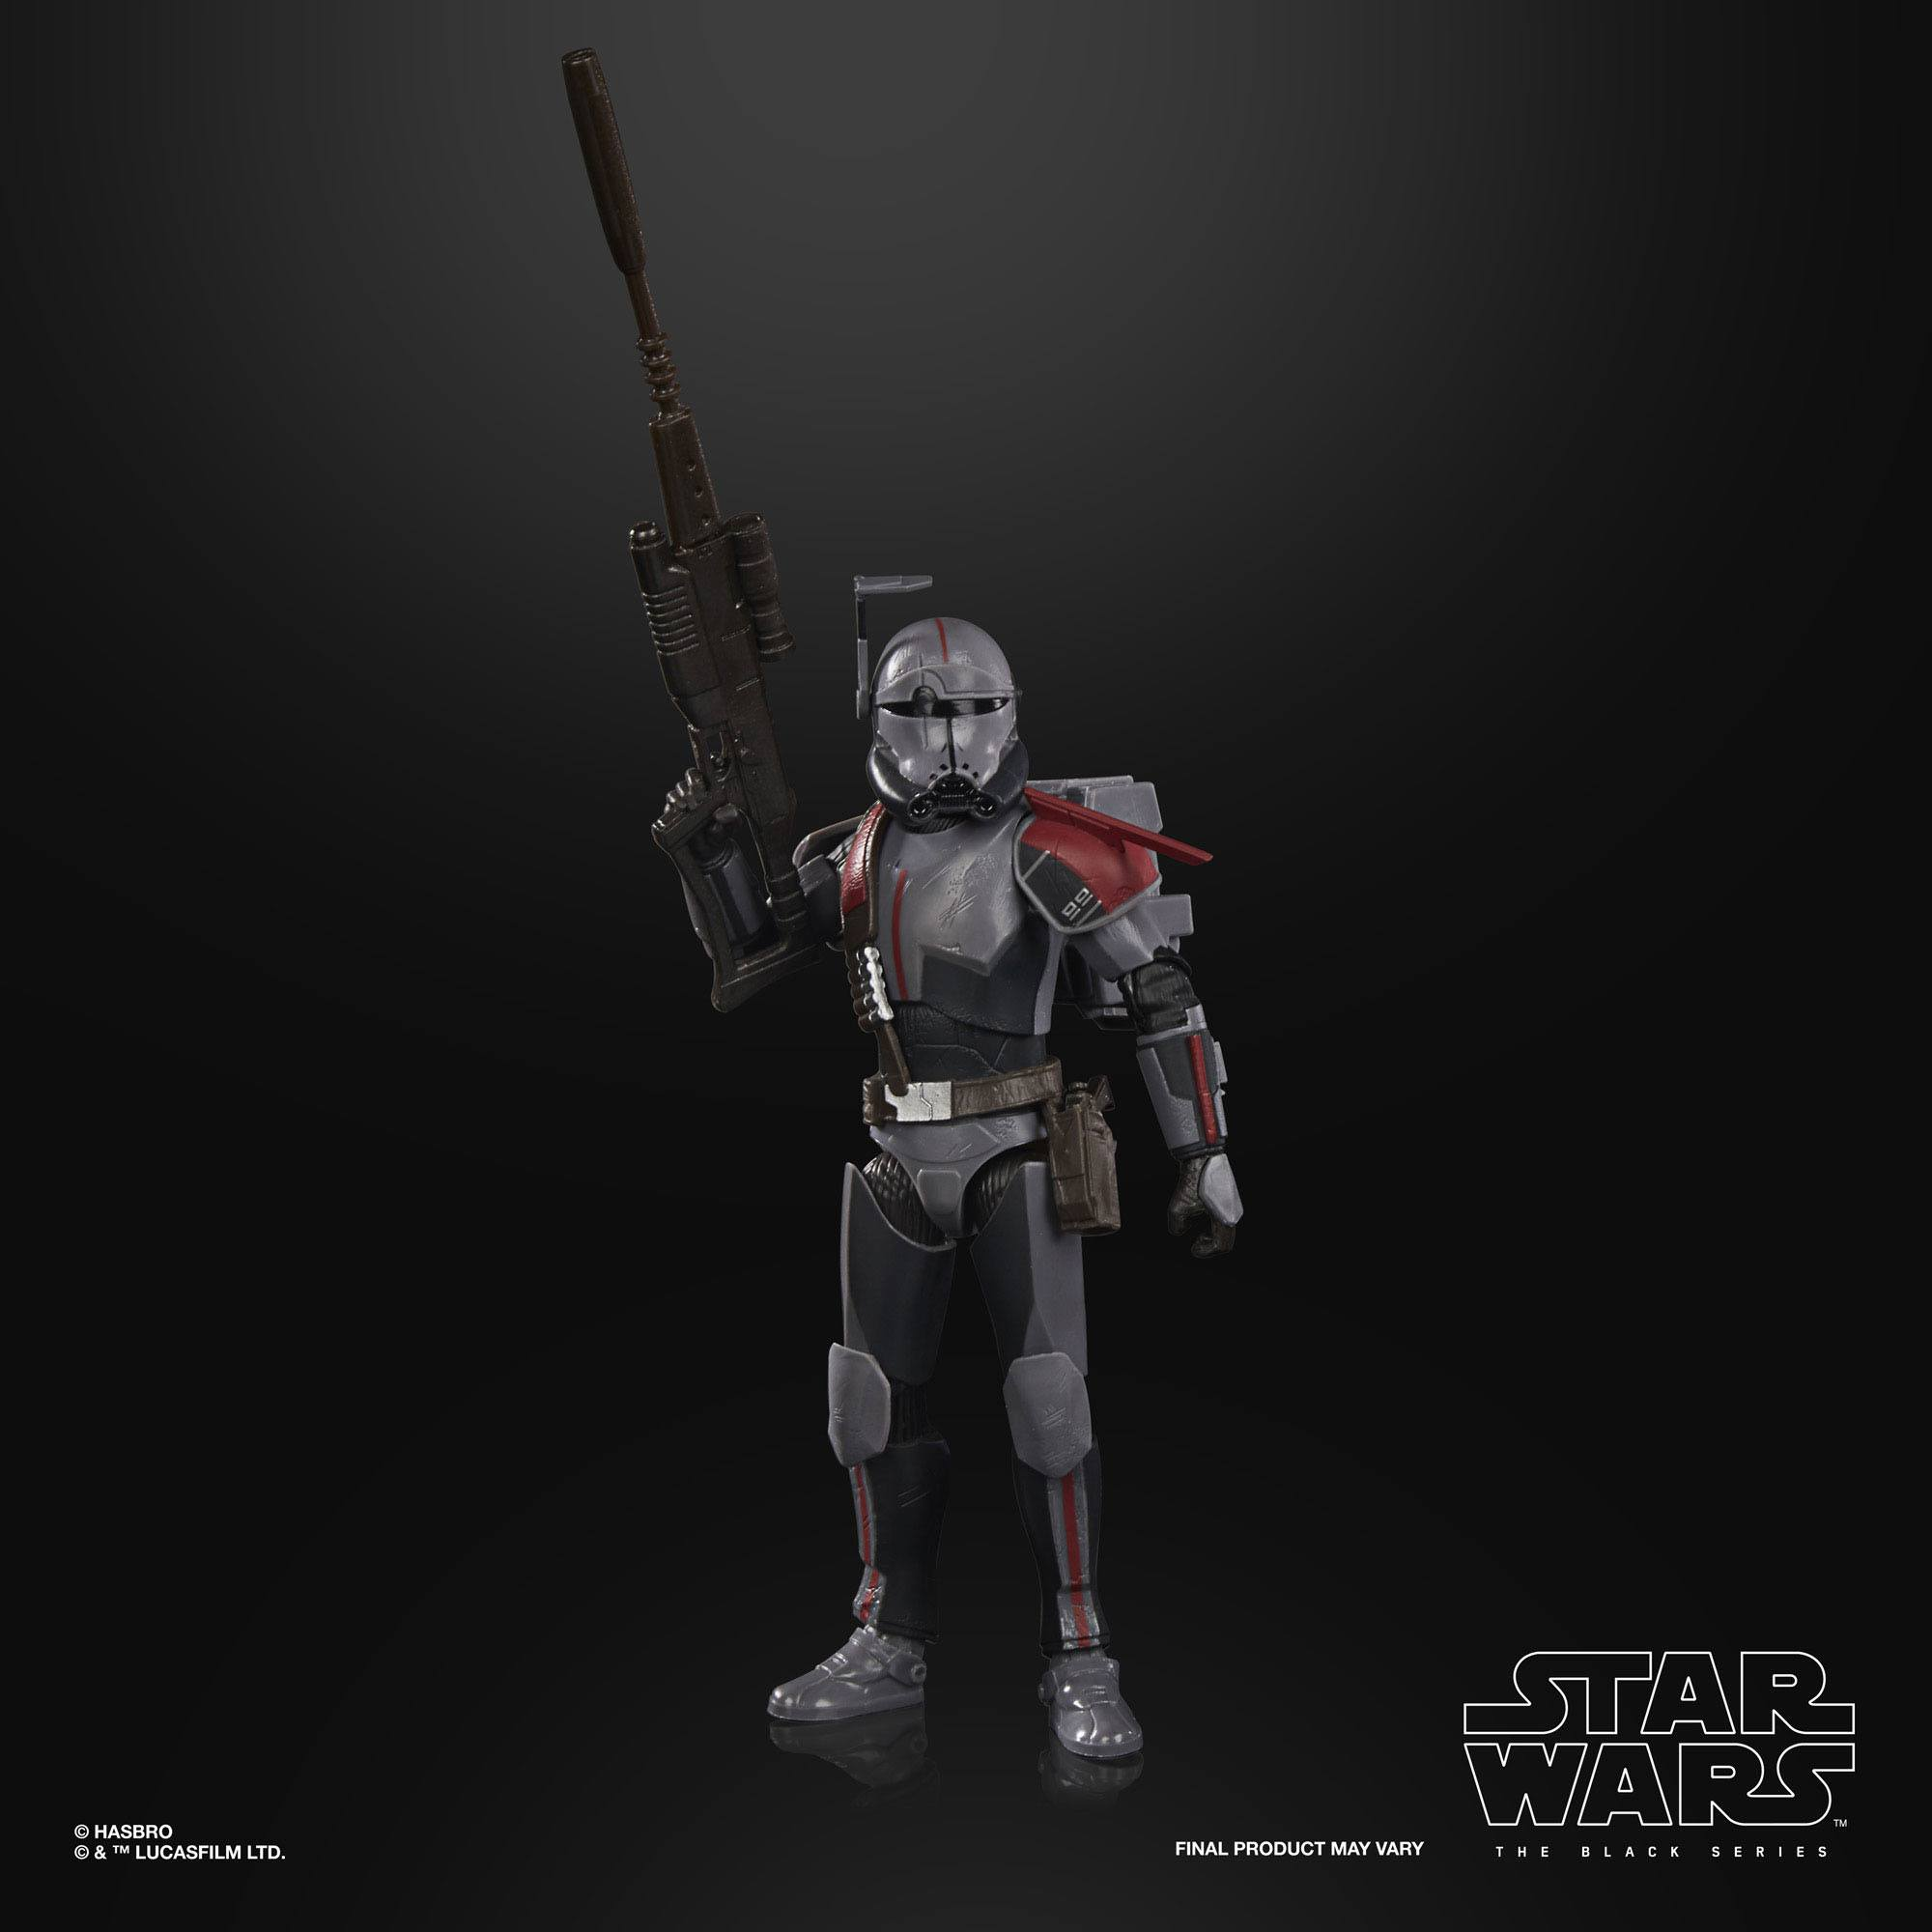 Star Wars The Black Series Bad Batch Crosshair 15cm Actionfigur F1860 5010993813384